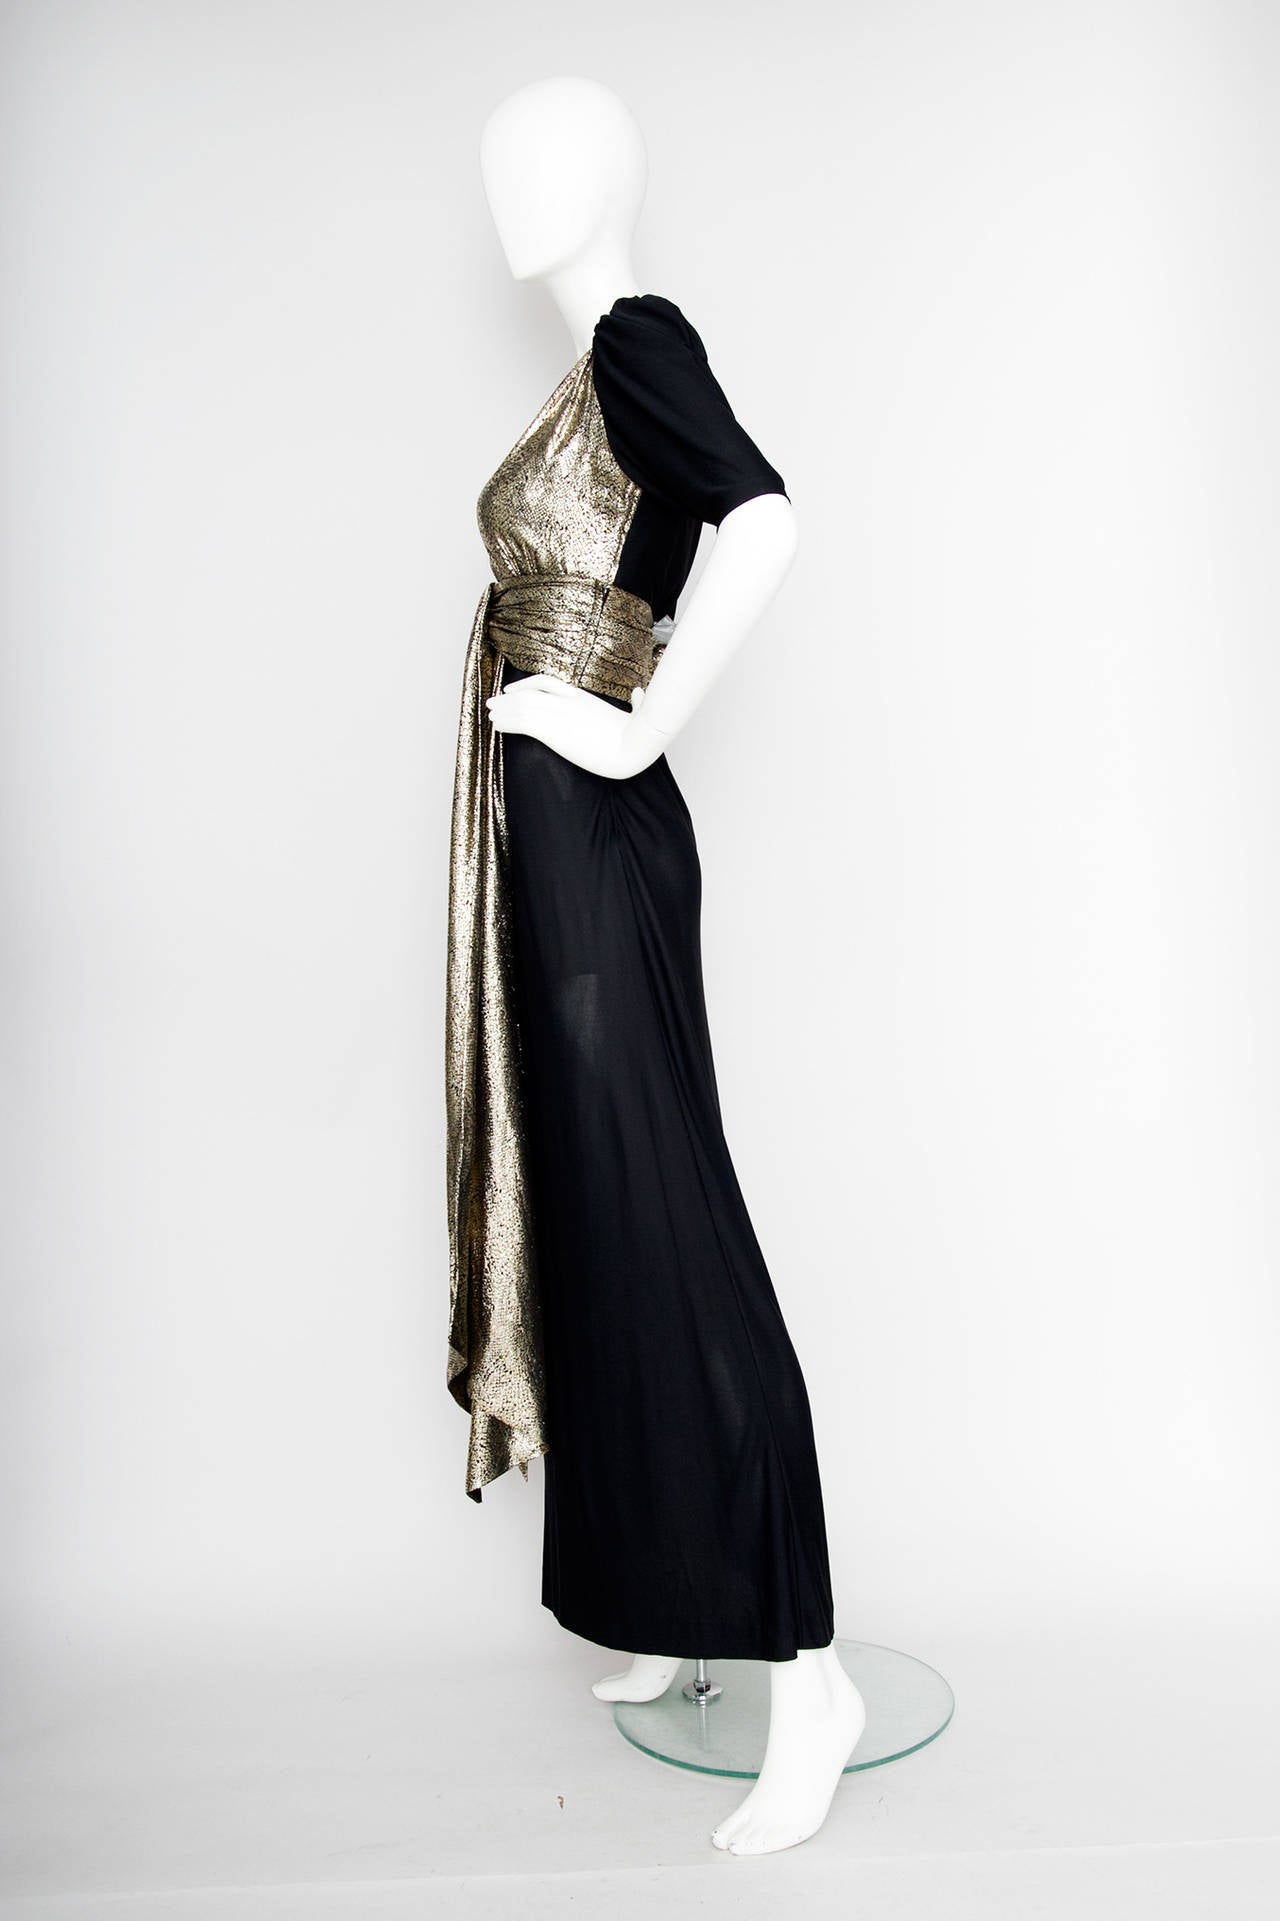 Women's Yves Saint Laurent Black Silk and Gold Lamé Dress, 1970s  For Sale